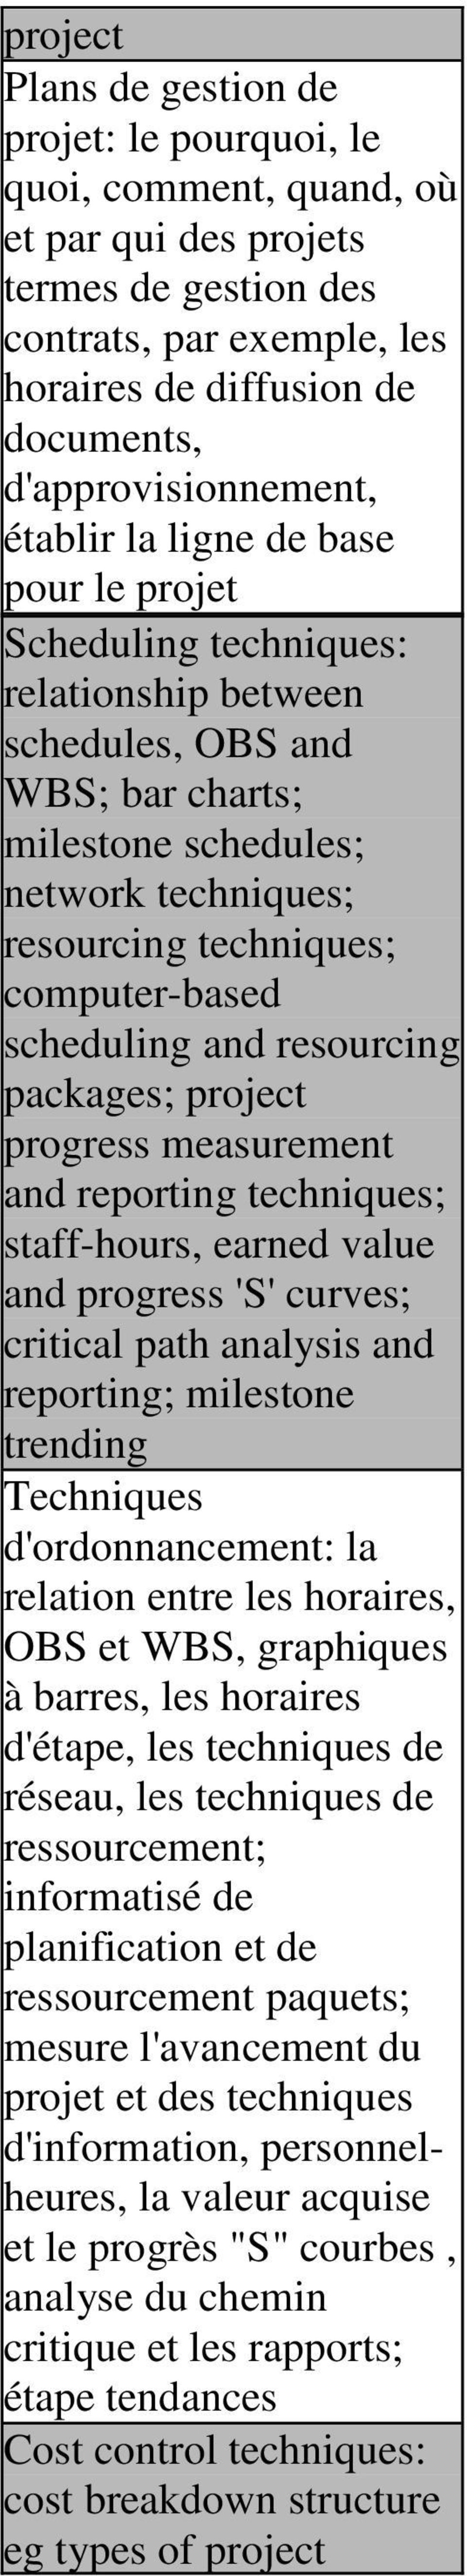 techniques; computer-based scheduling and resourcing packages; project progress measurement and reporting techniques; staff-hours, earned value and progress 'S' curves; critical path analysis and